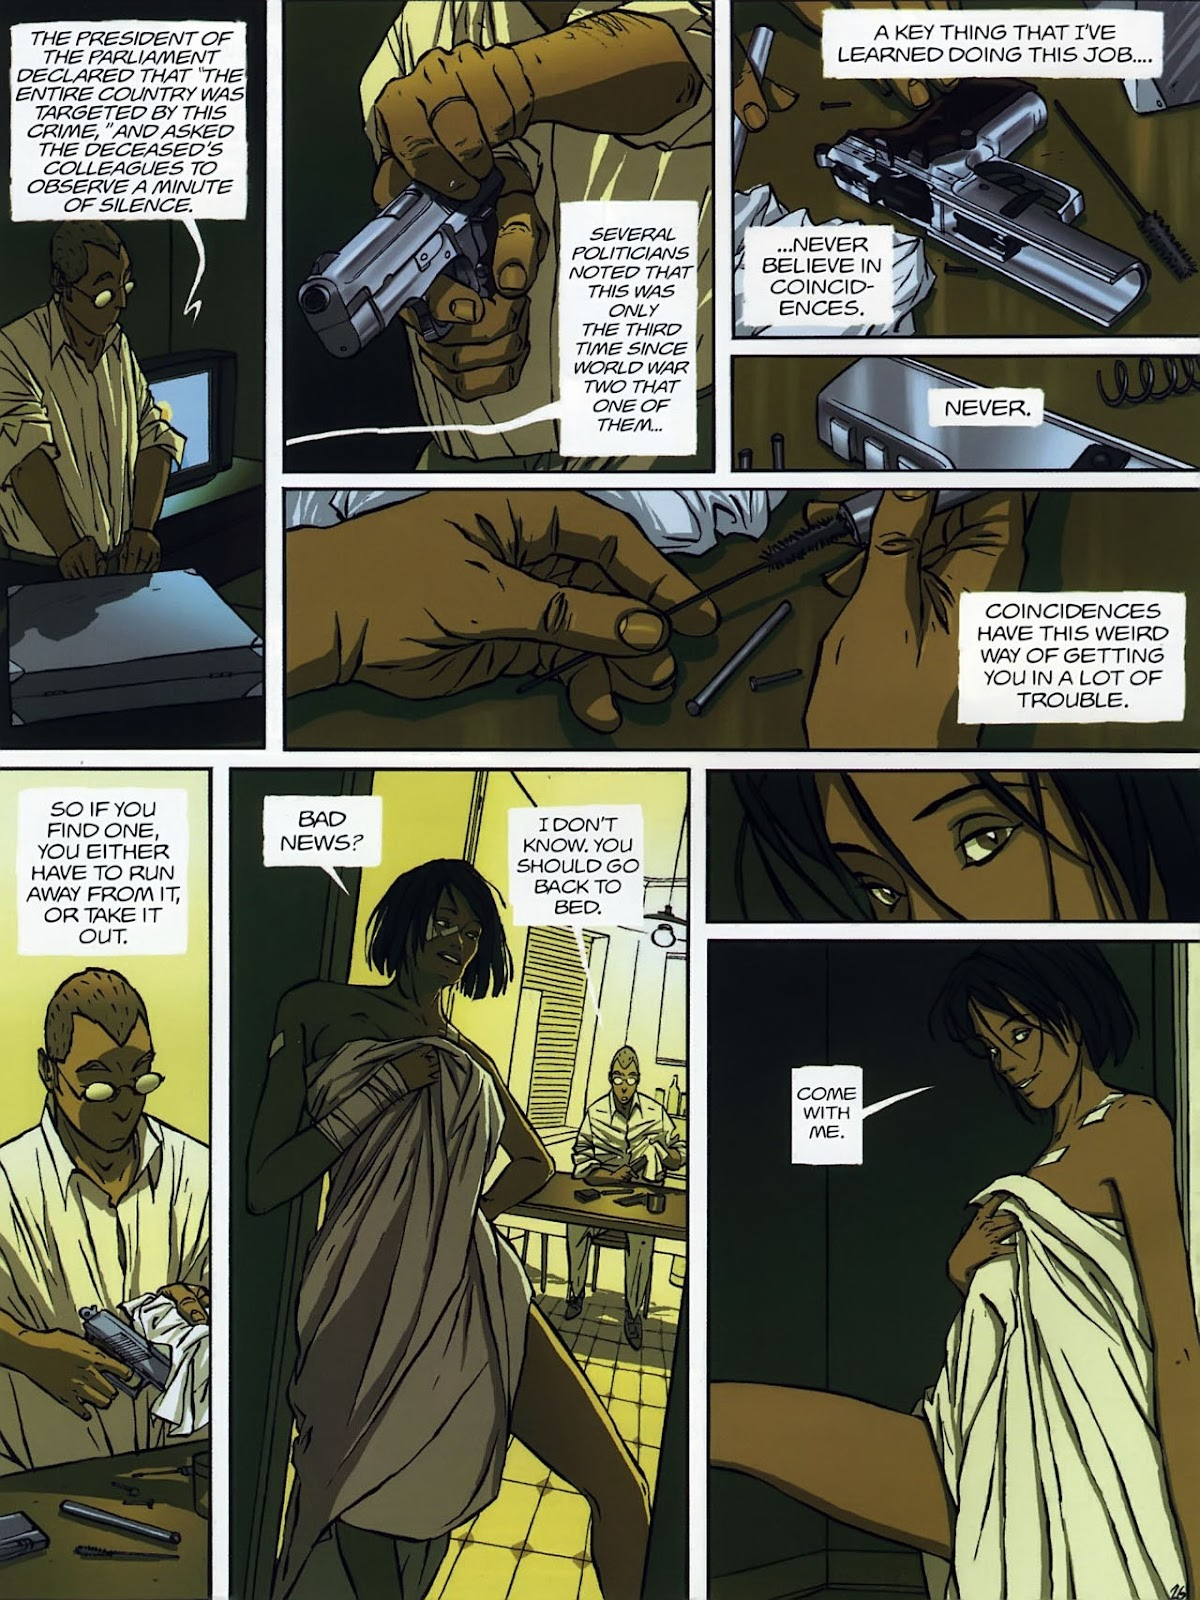 Read online The Killer comic -  Issue #7 - 28